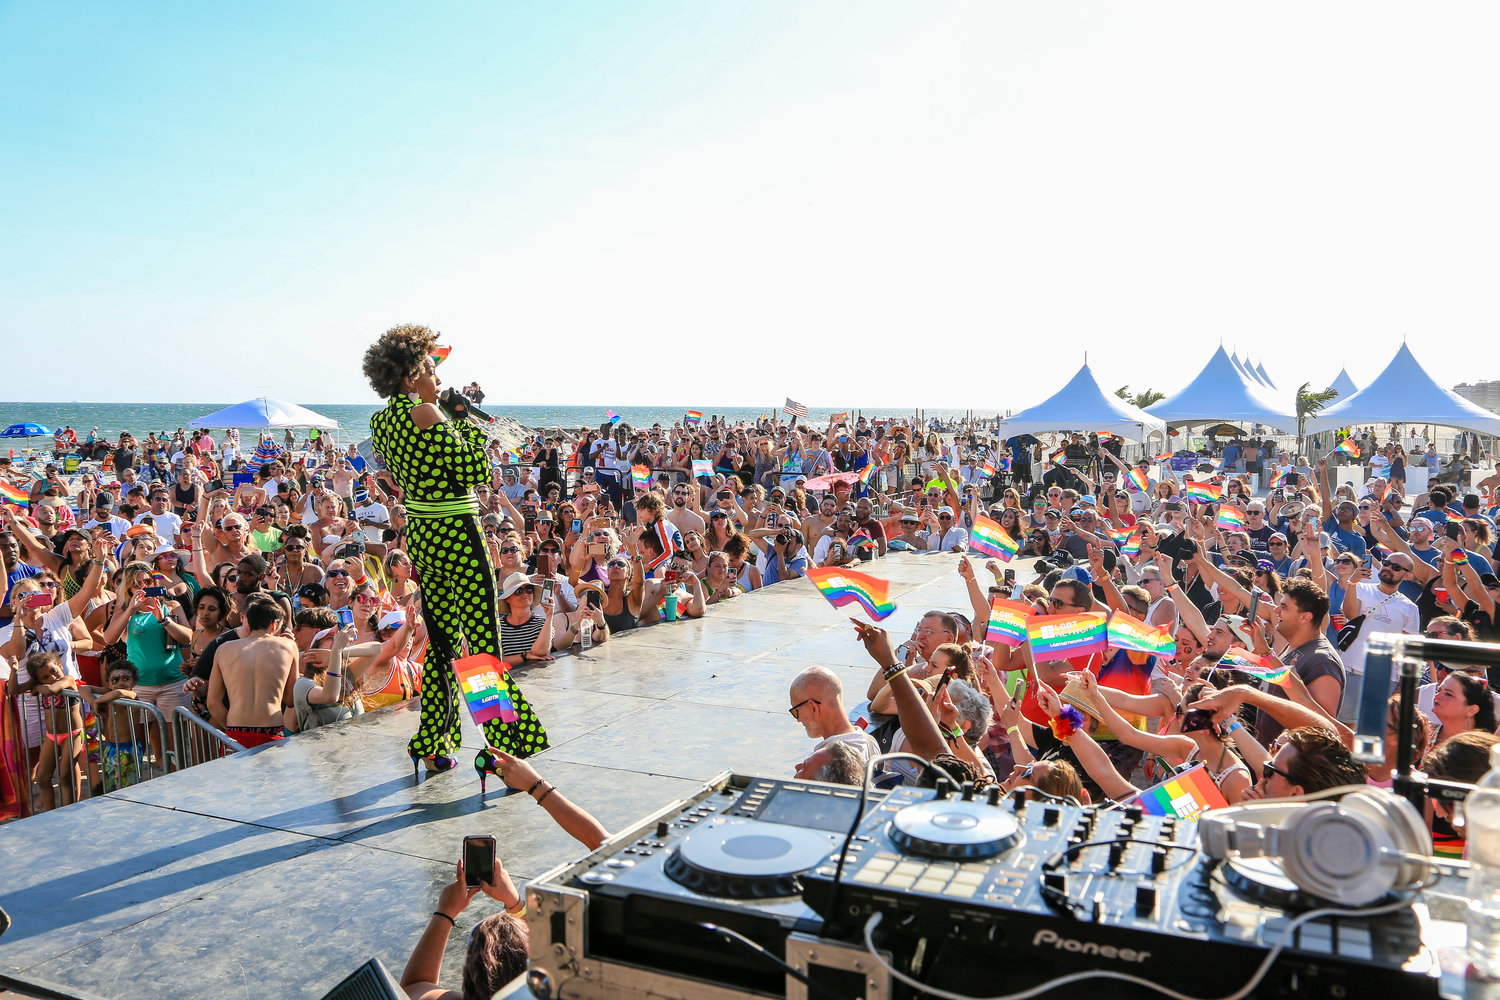 Grammy-Winning Macy Gray headlined the beach concert at the 3rd annual Pride on the Beach event.